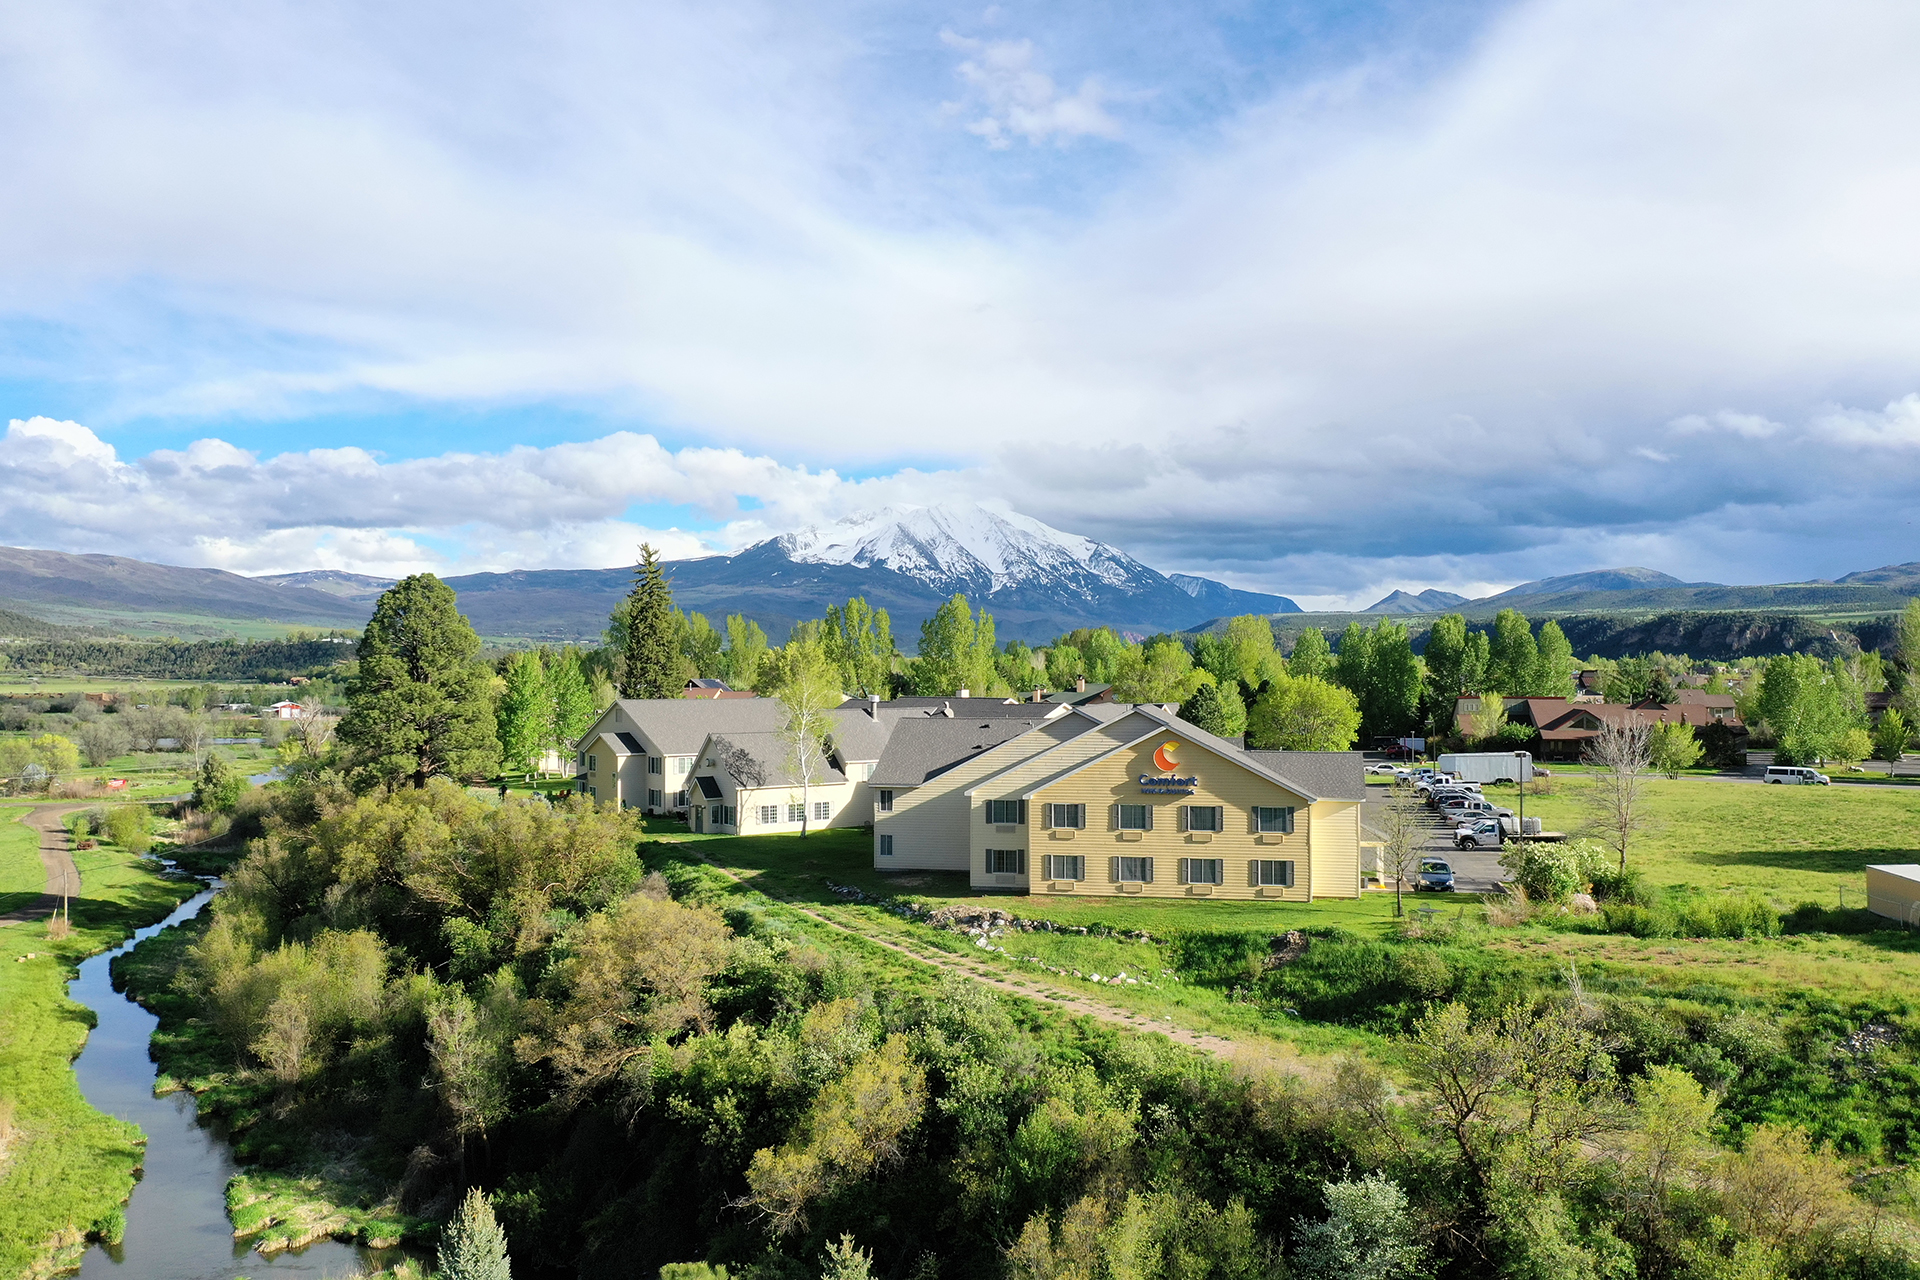 Aerial footage of the exterior of Carbondale Comfort Inn, Mt. Sopris in the background